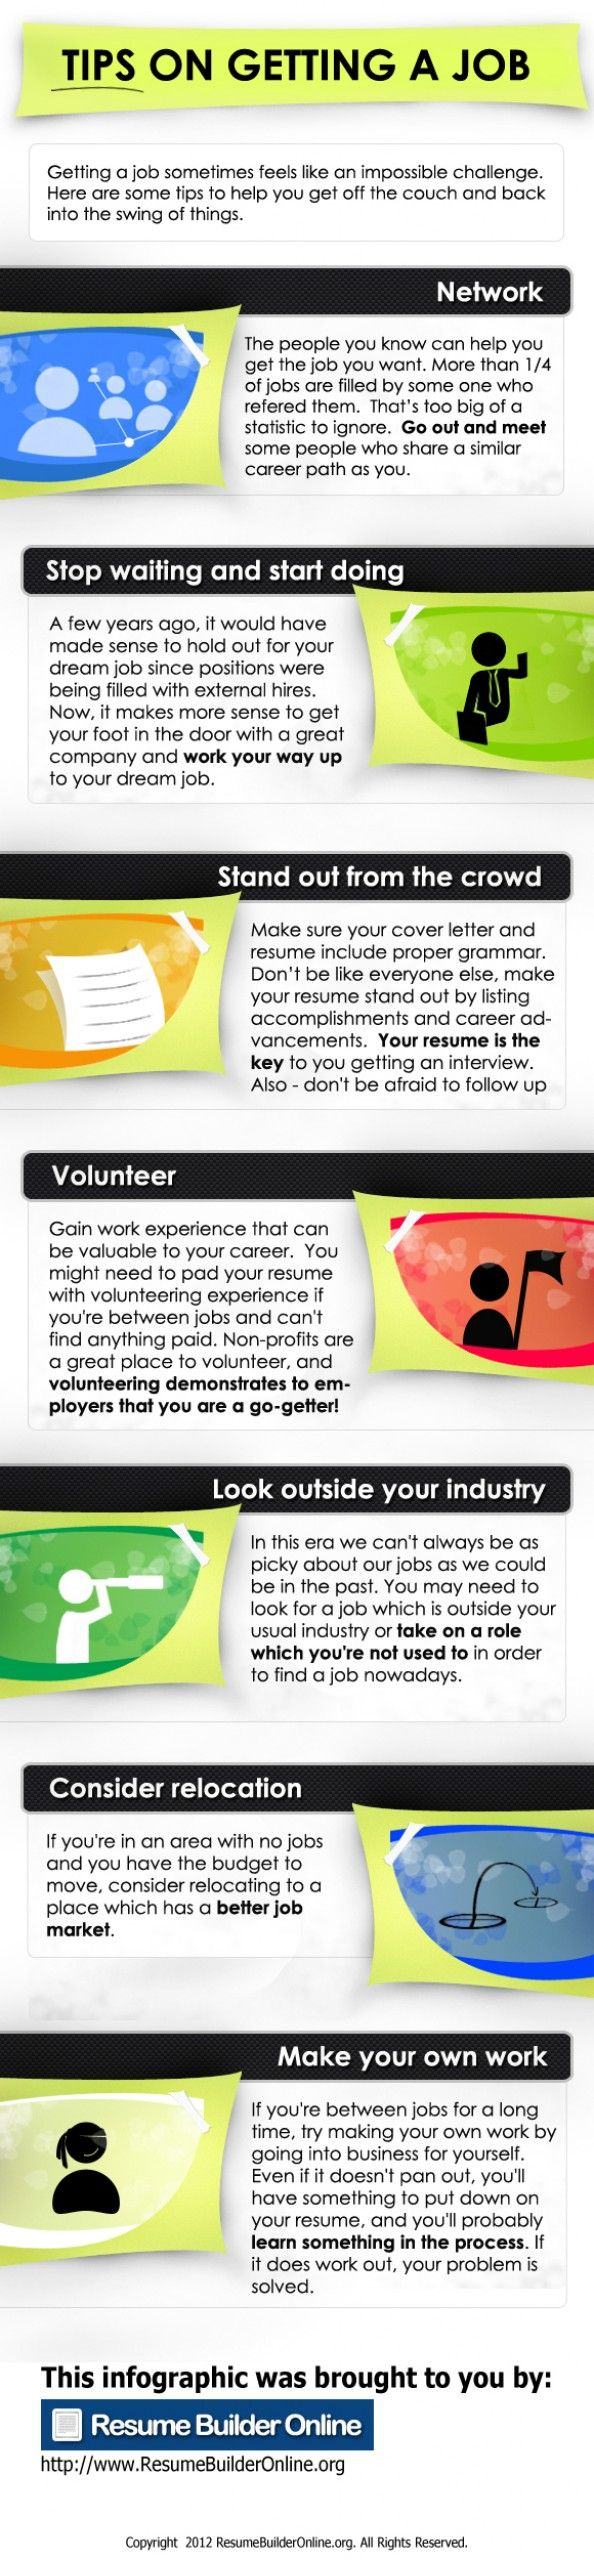 Tips on Getting a Job  Stop by my Shop www.etsy.com/shop/teolddesign  Stop by my Etsy Shop: www.etsy.com/shop/TeoldDesign